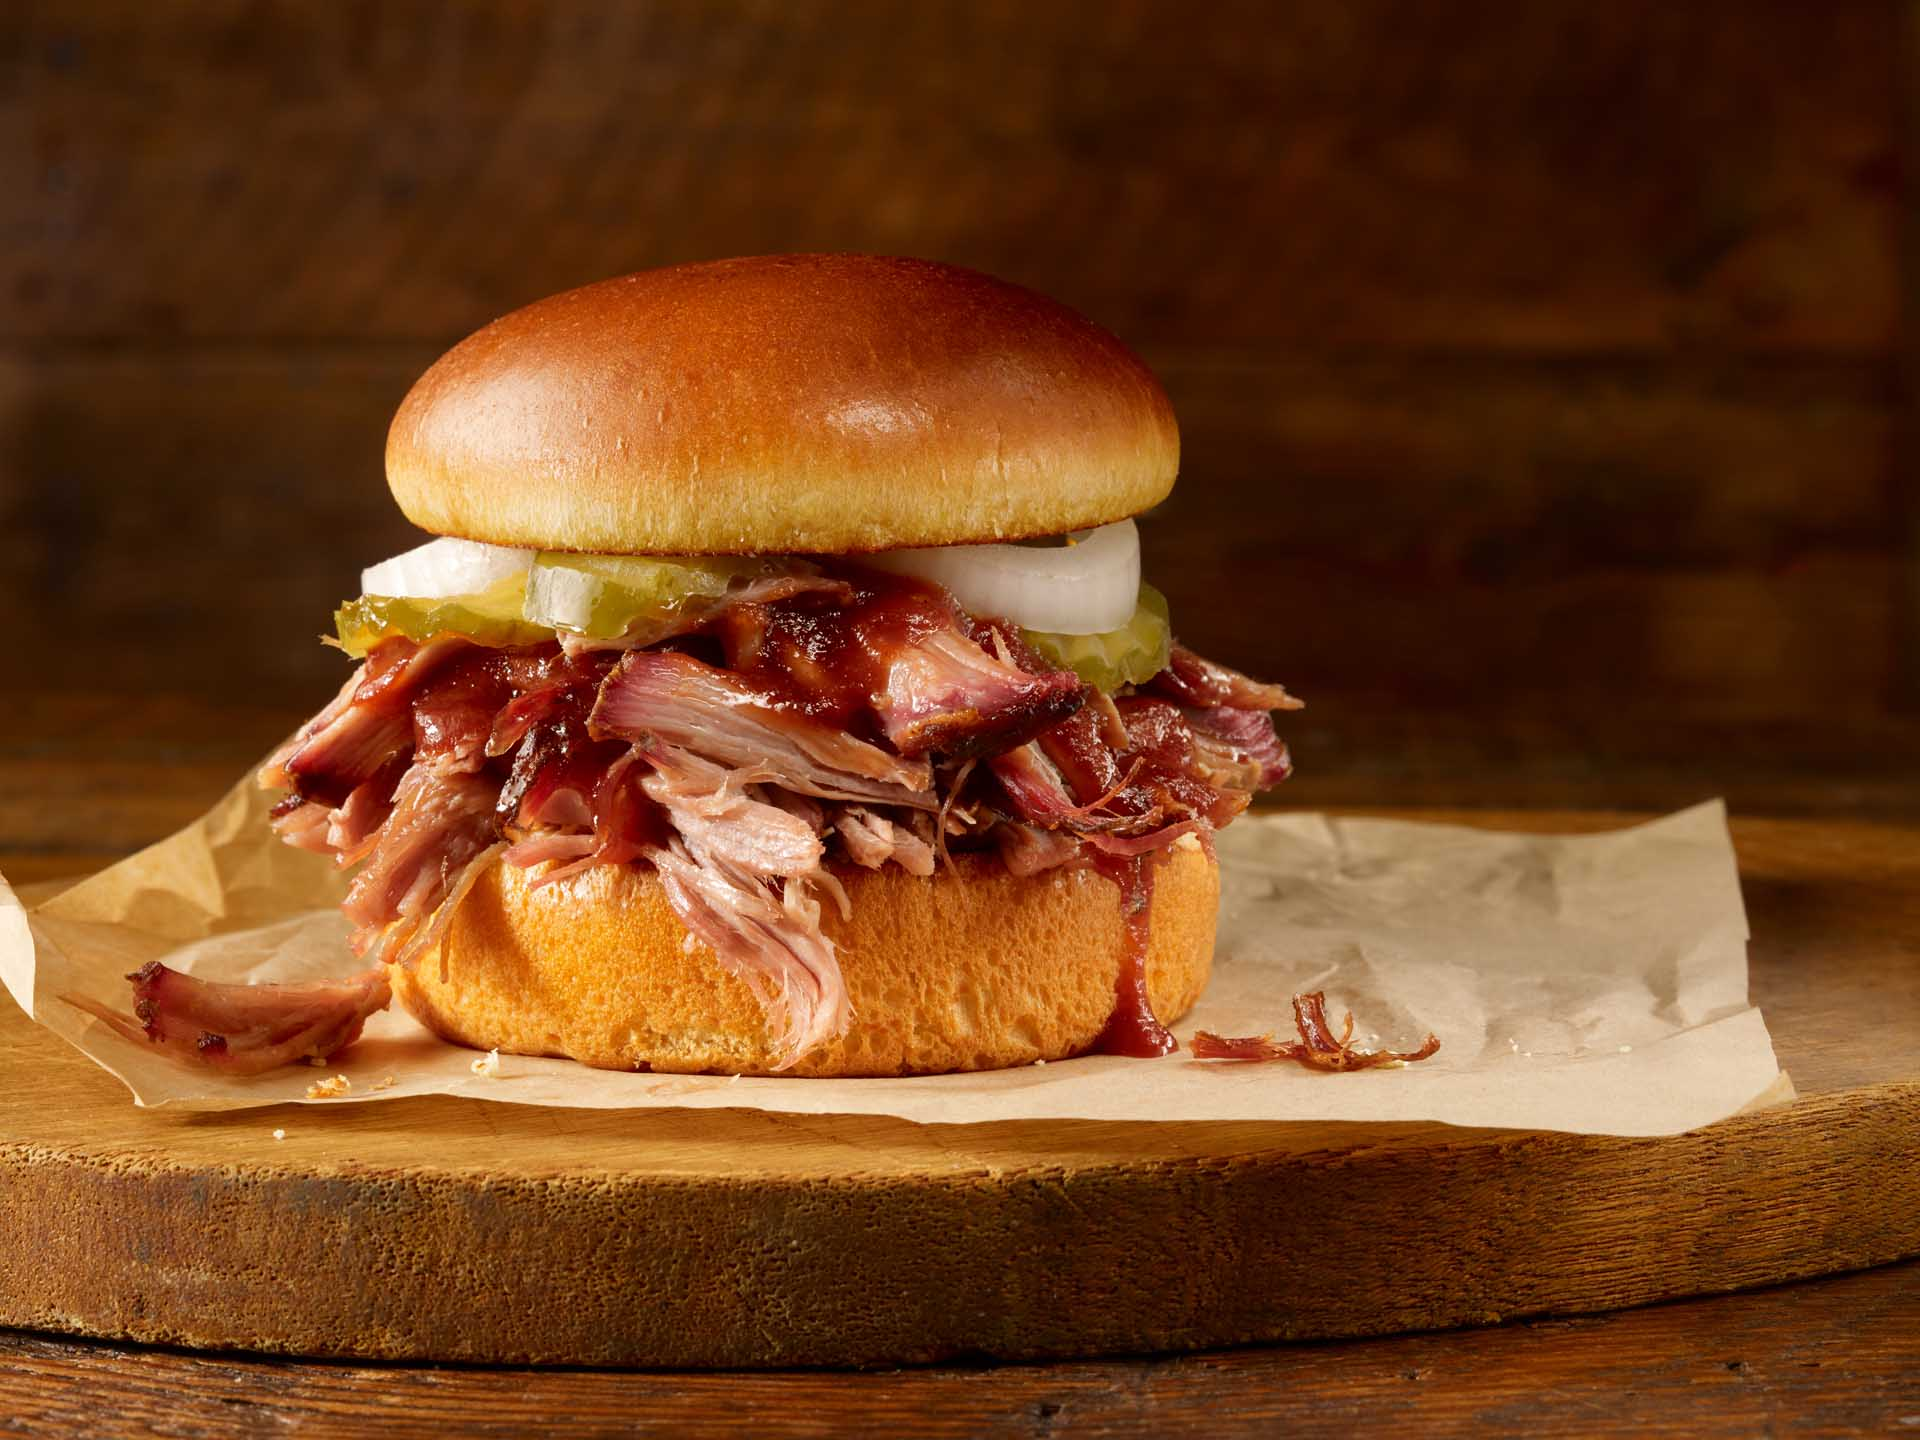 The 828: Mega Deal Dickey's Barbecue Pit